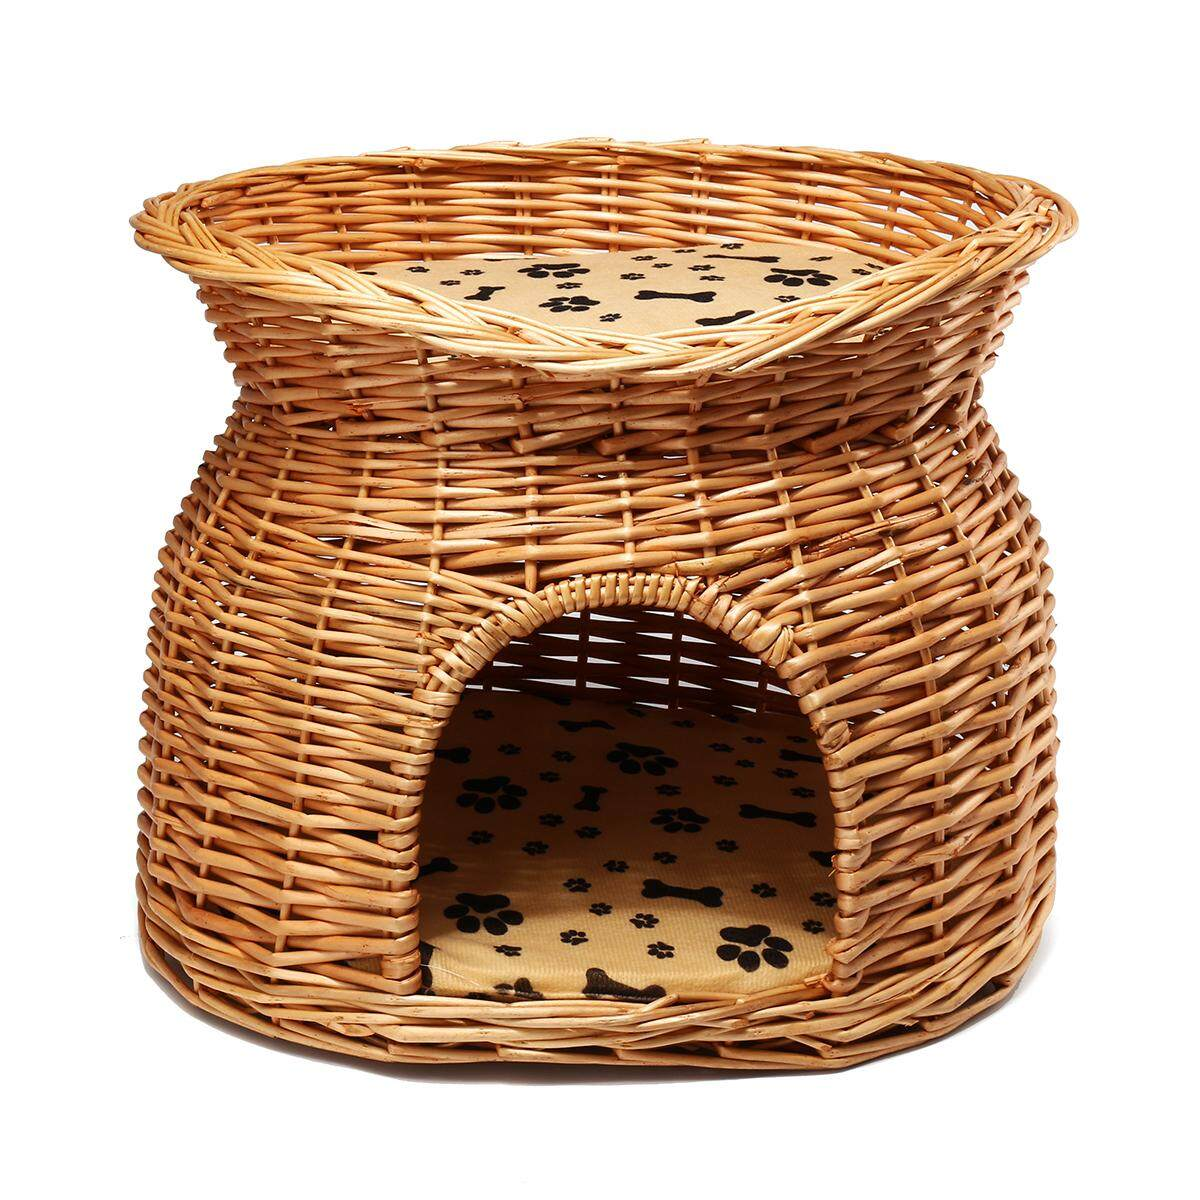 2 Tier Wicker Cat Bed Basket Pet Pod House Sleeping Cushions Puppy Small Dog Bed By Freebang.